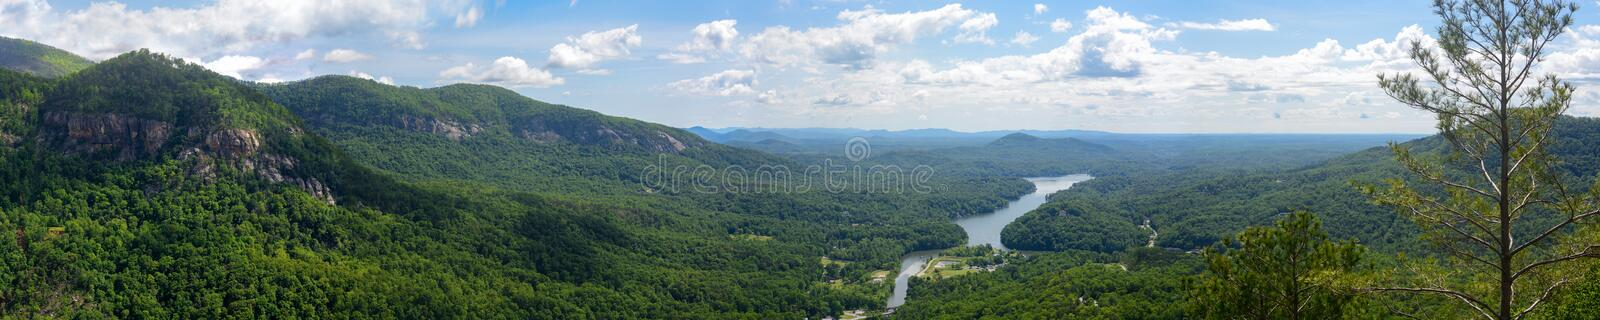 Wide panorama of lake lure in North Carolina, United States, as seen from Chimney Rock royalty free stock photos